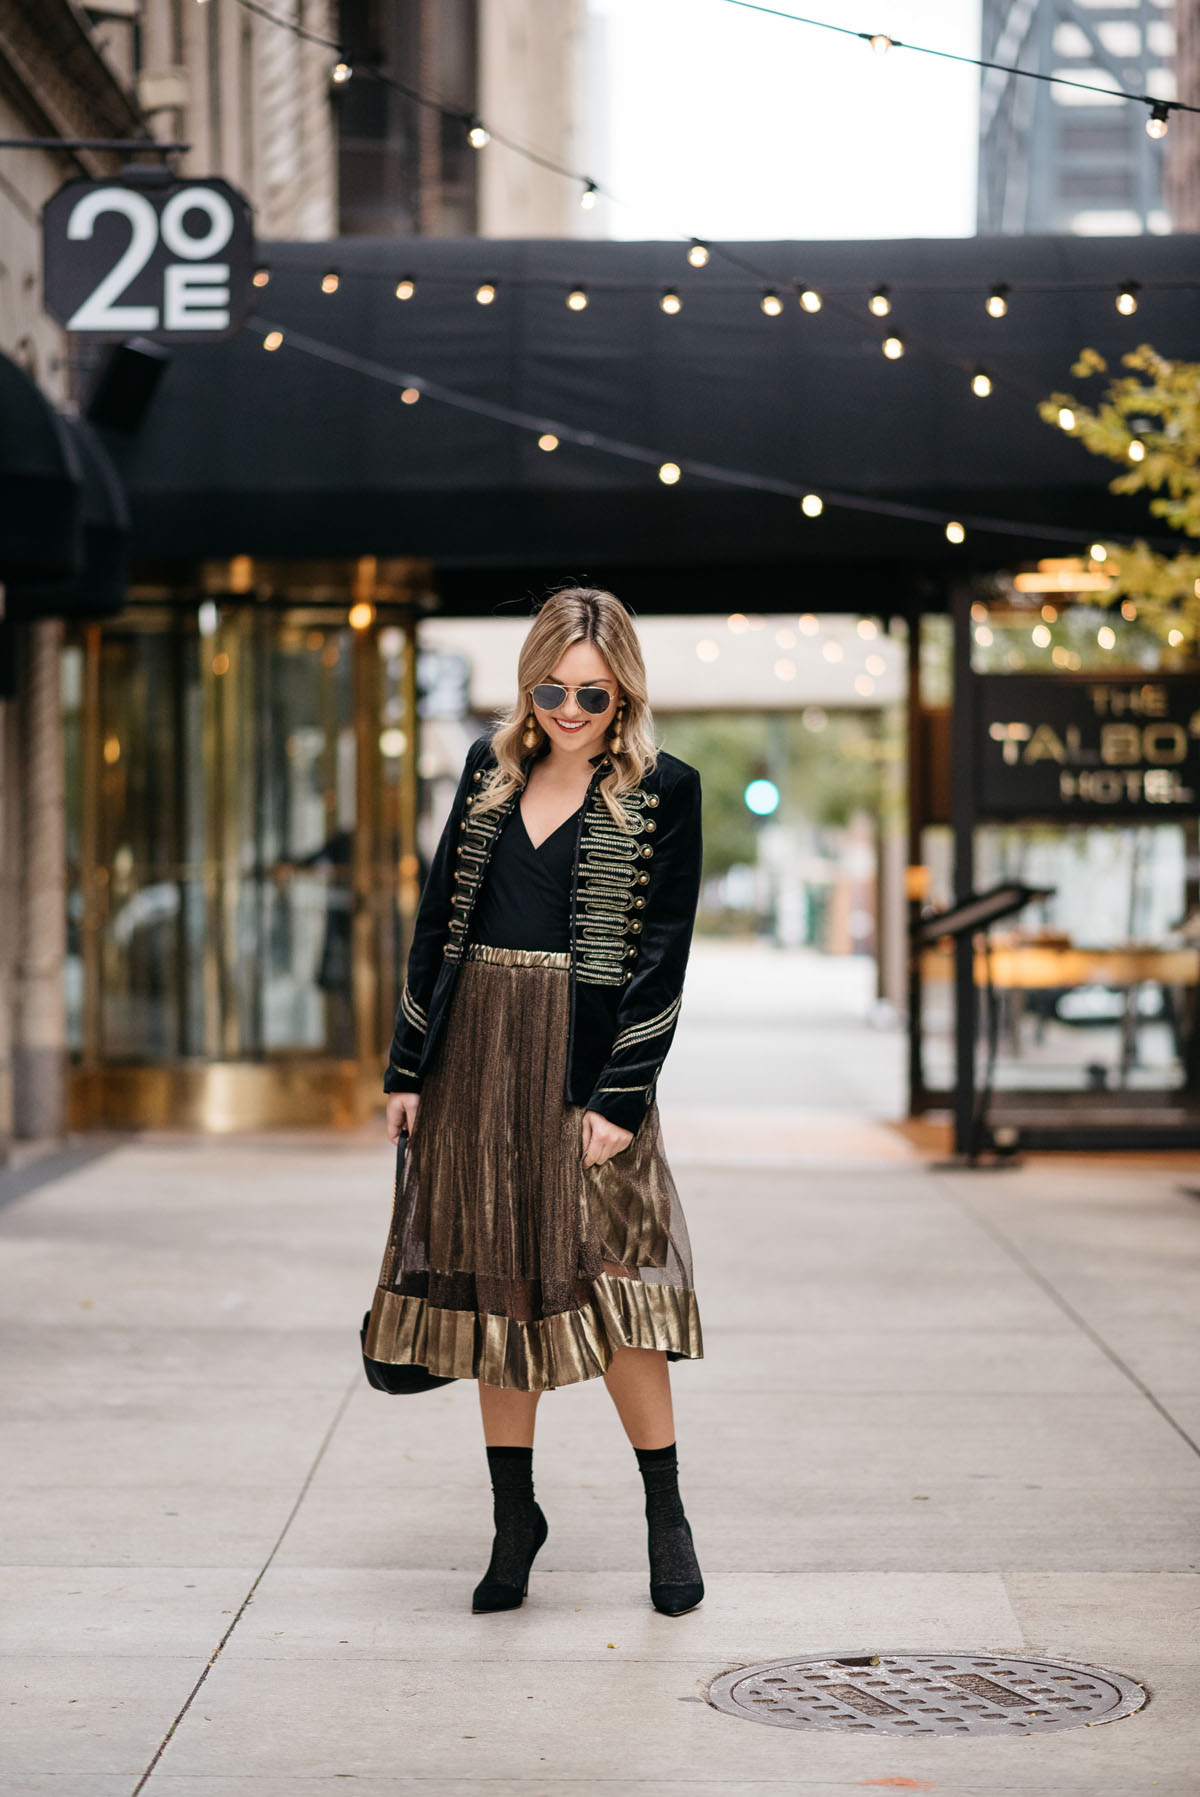 Chicago blogger Jessica Rose Sturdy wearing Ray-Ban aviators, Blank NYC black velvet and gold embroidered band jacket, J.Crew bodysuit, gold midi skirt, black & gold shimmer socks, and Kate Spade black suede pumps with Kenneth Jay Lane gold earrings and a Gucci Marmont black leather bag.